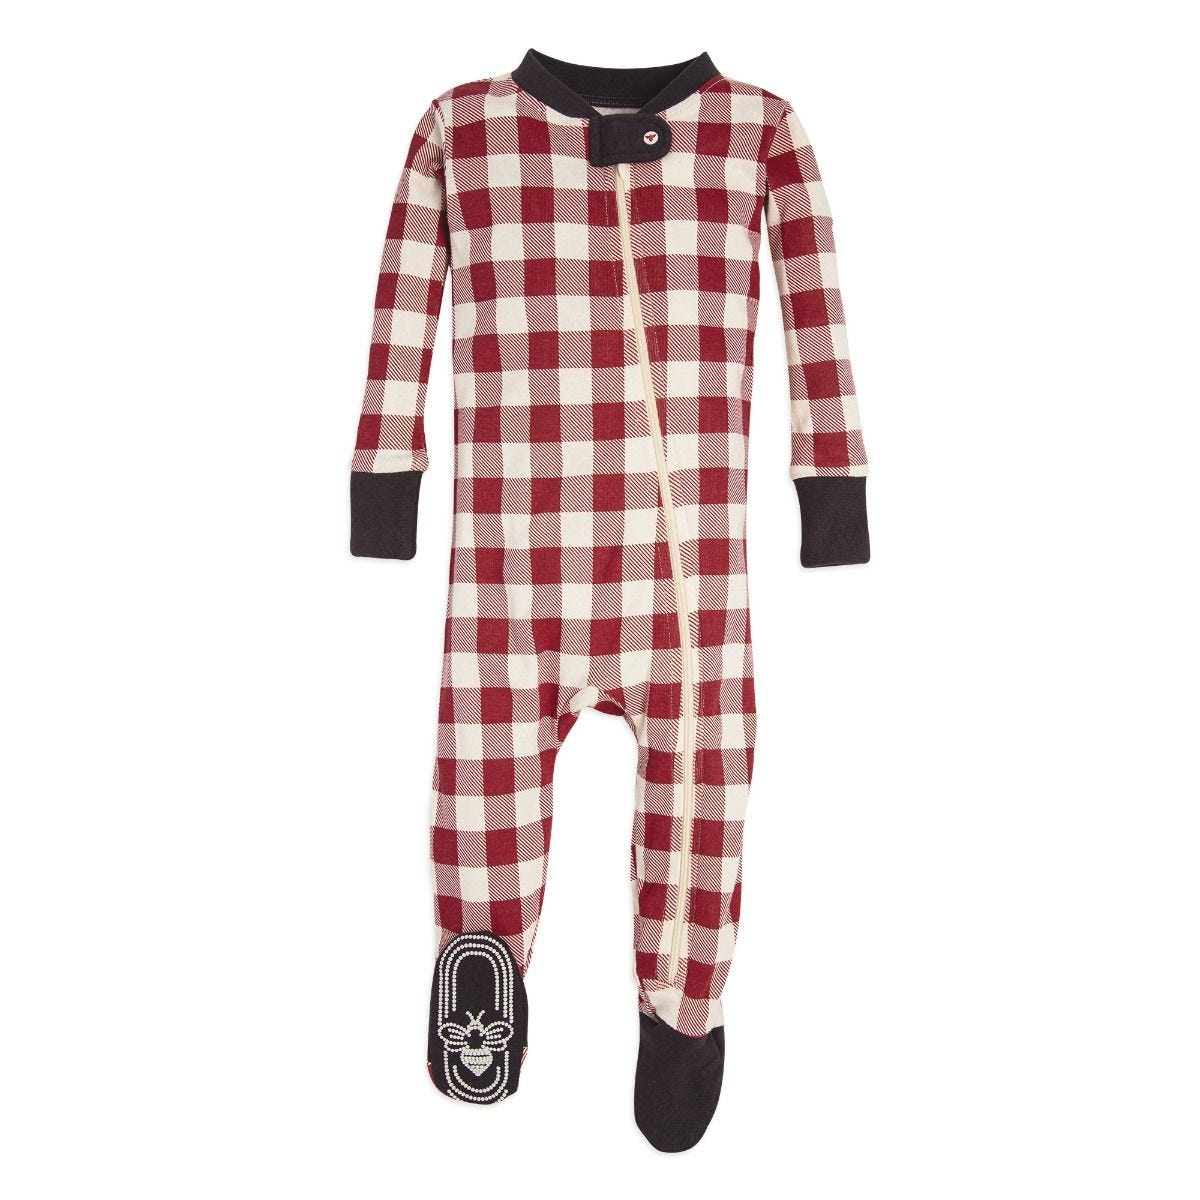 44f73ca44 Buffalo Check Organic Baby Holiday Matching Zip Up Footed Pajamas